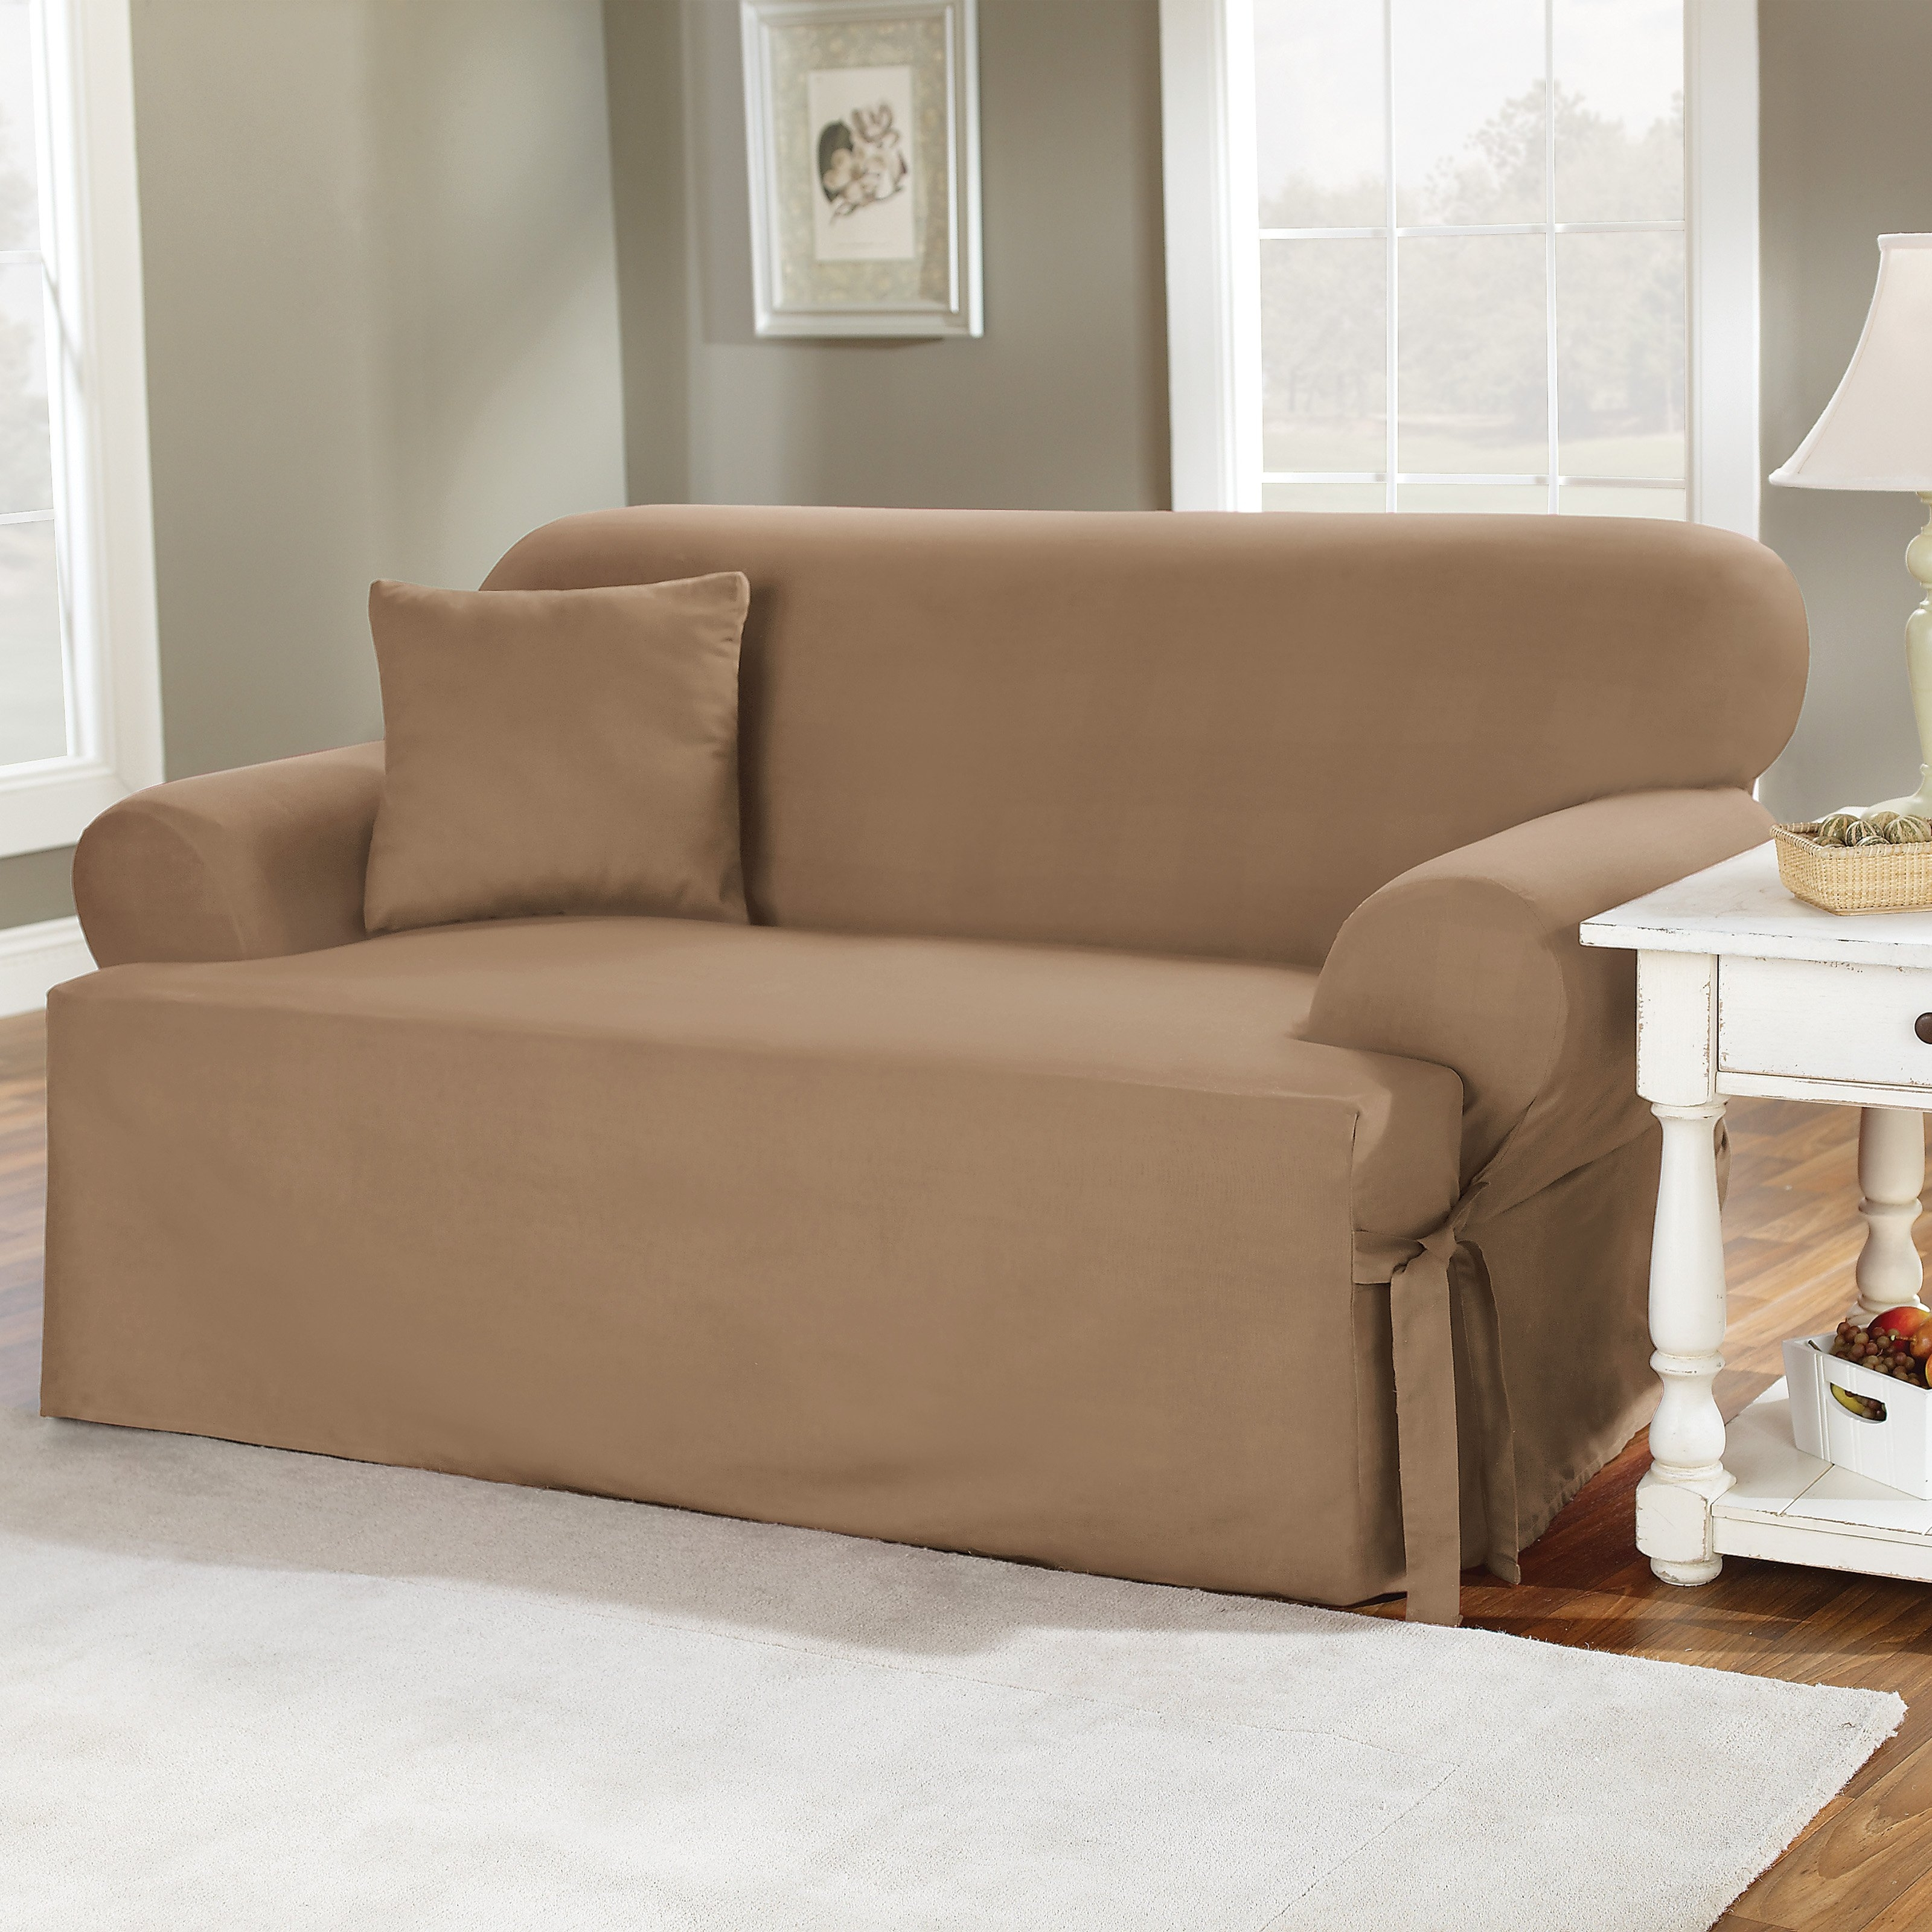 Slipcovers Sofas Throughout Best And Newest Sure Fit Cotton Duck T Cushion Sofa Slipcover (View 13 of 15)